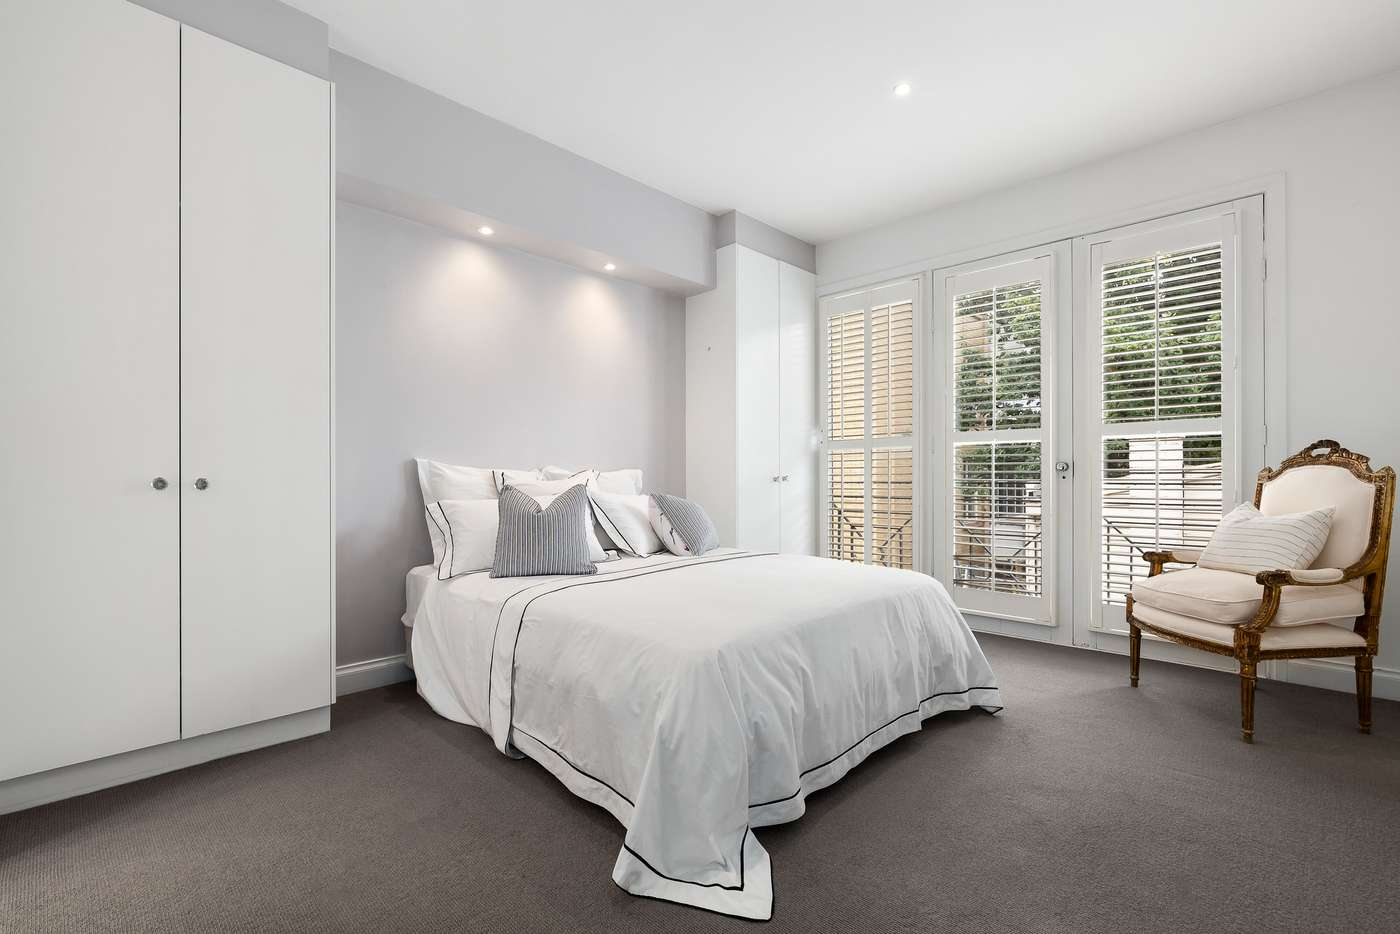 Fifth view of Homely apartment listing, 7/1 Brookville Road, Toorak VIC 3142